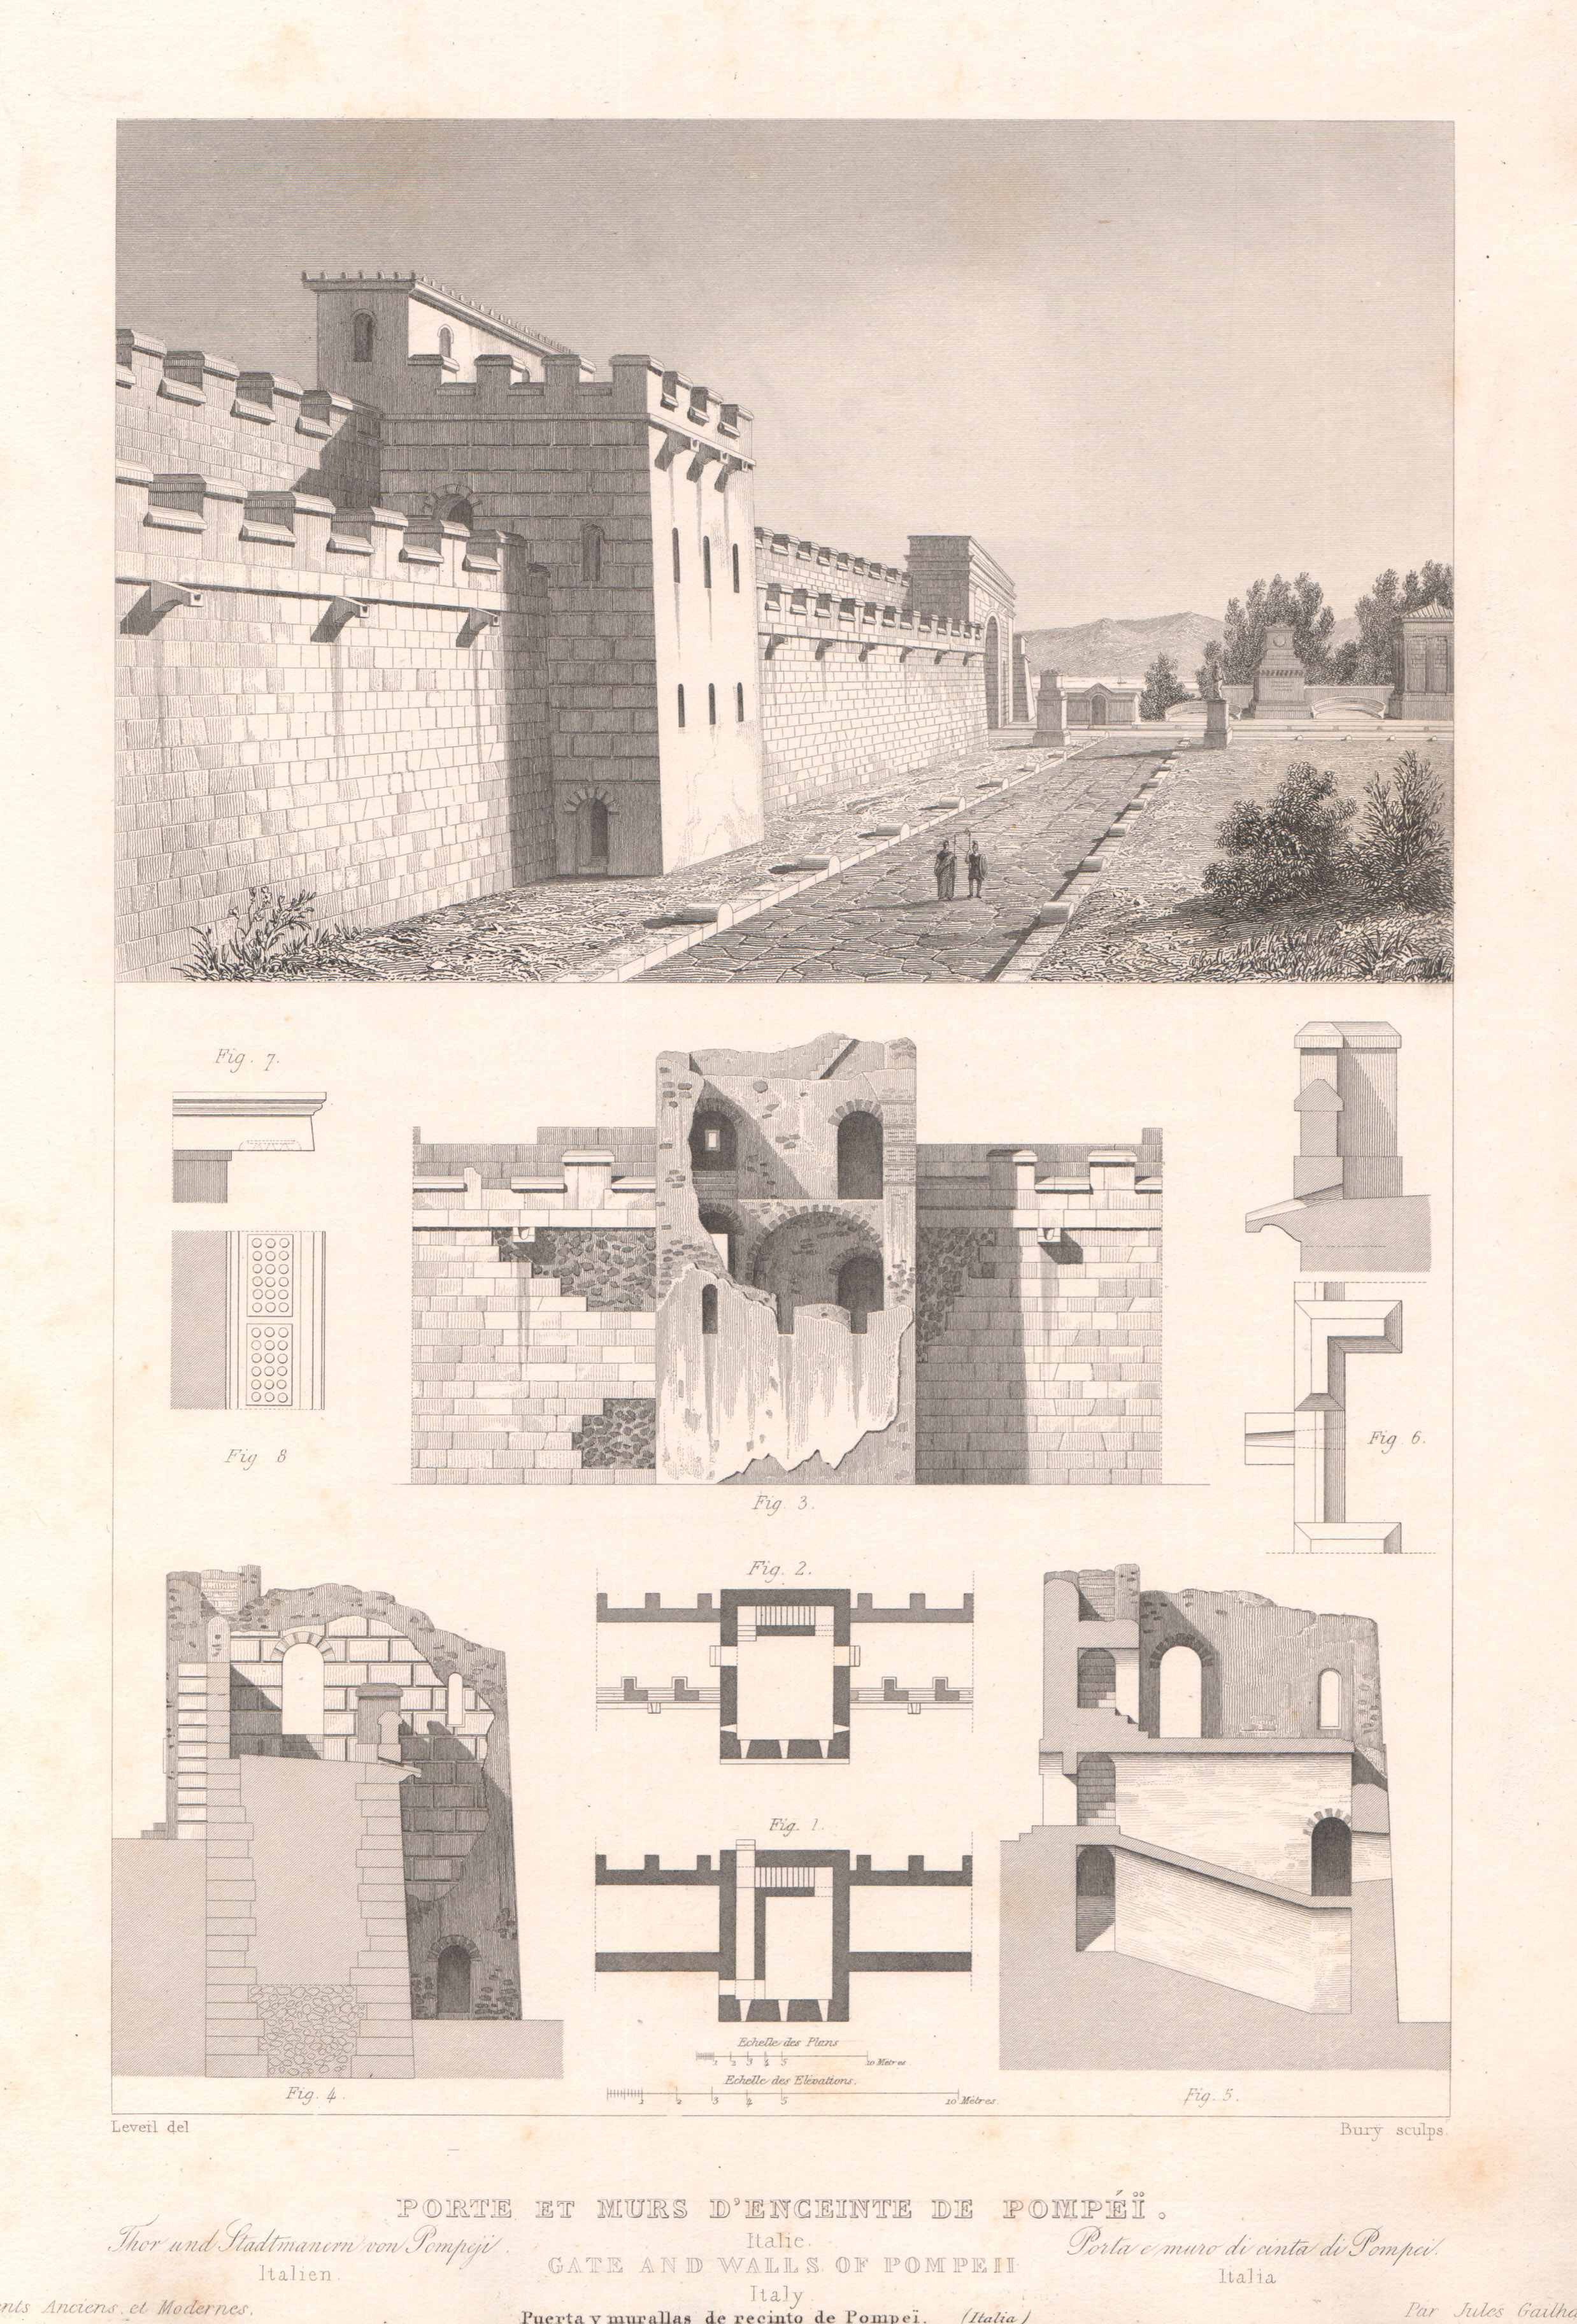 Italy - Antique Monuments - Gate and Walls of Pompei - Campania - Naples